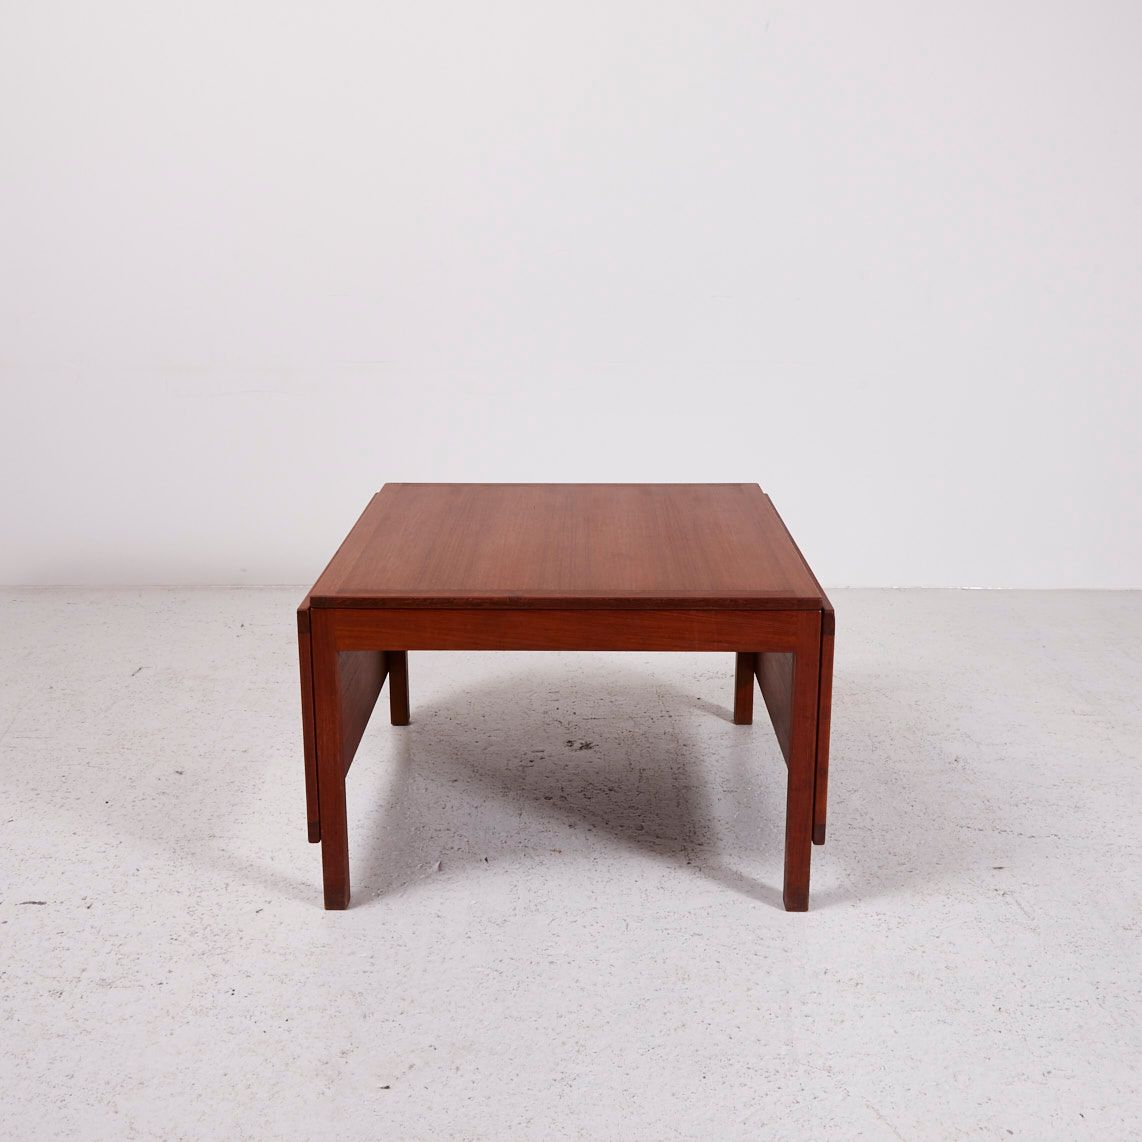 Teak Coffee Table South Africa: Model 5362 Teak Coffee Table By Børge Mogensen For